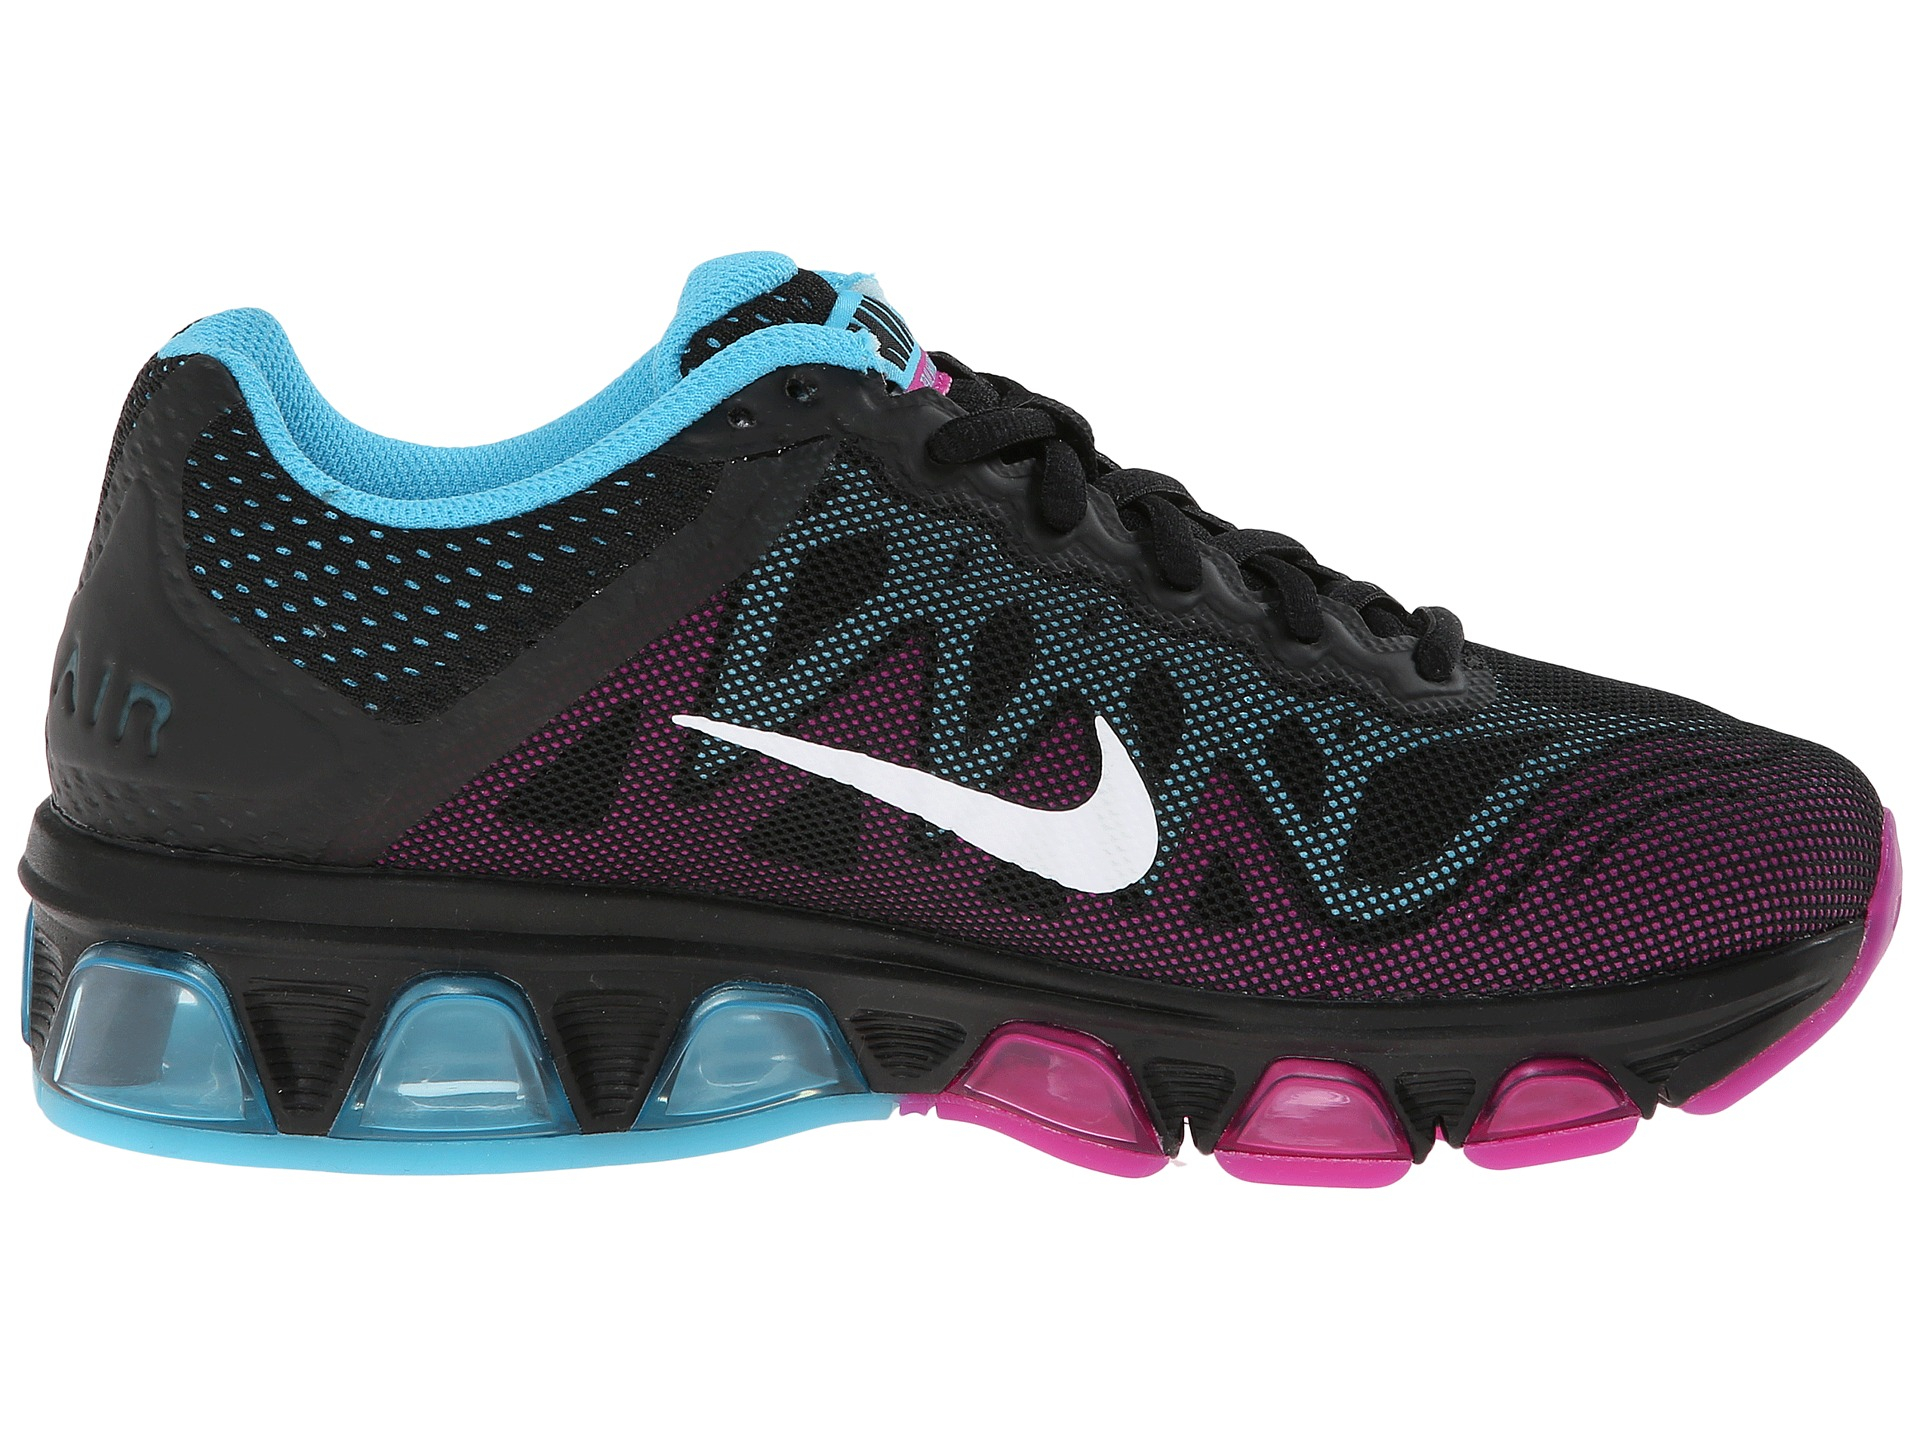 lyst nike air max tailwind 7 in black. Black Bedroom Furniture Sets. Home Design Ideas